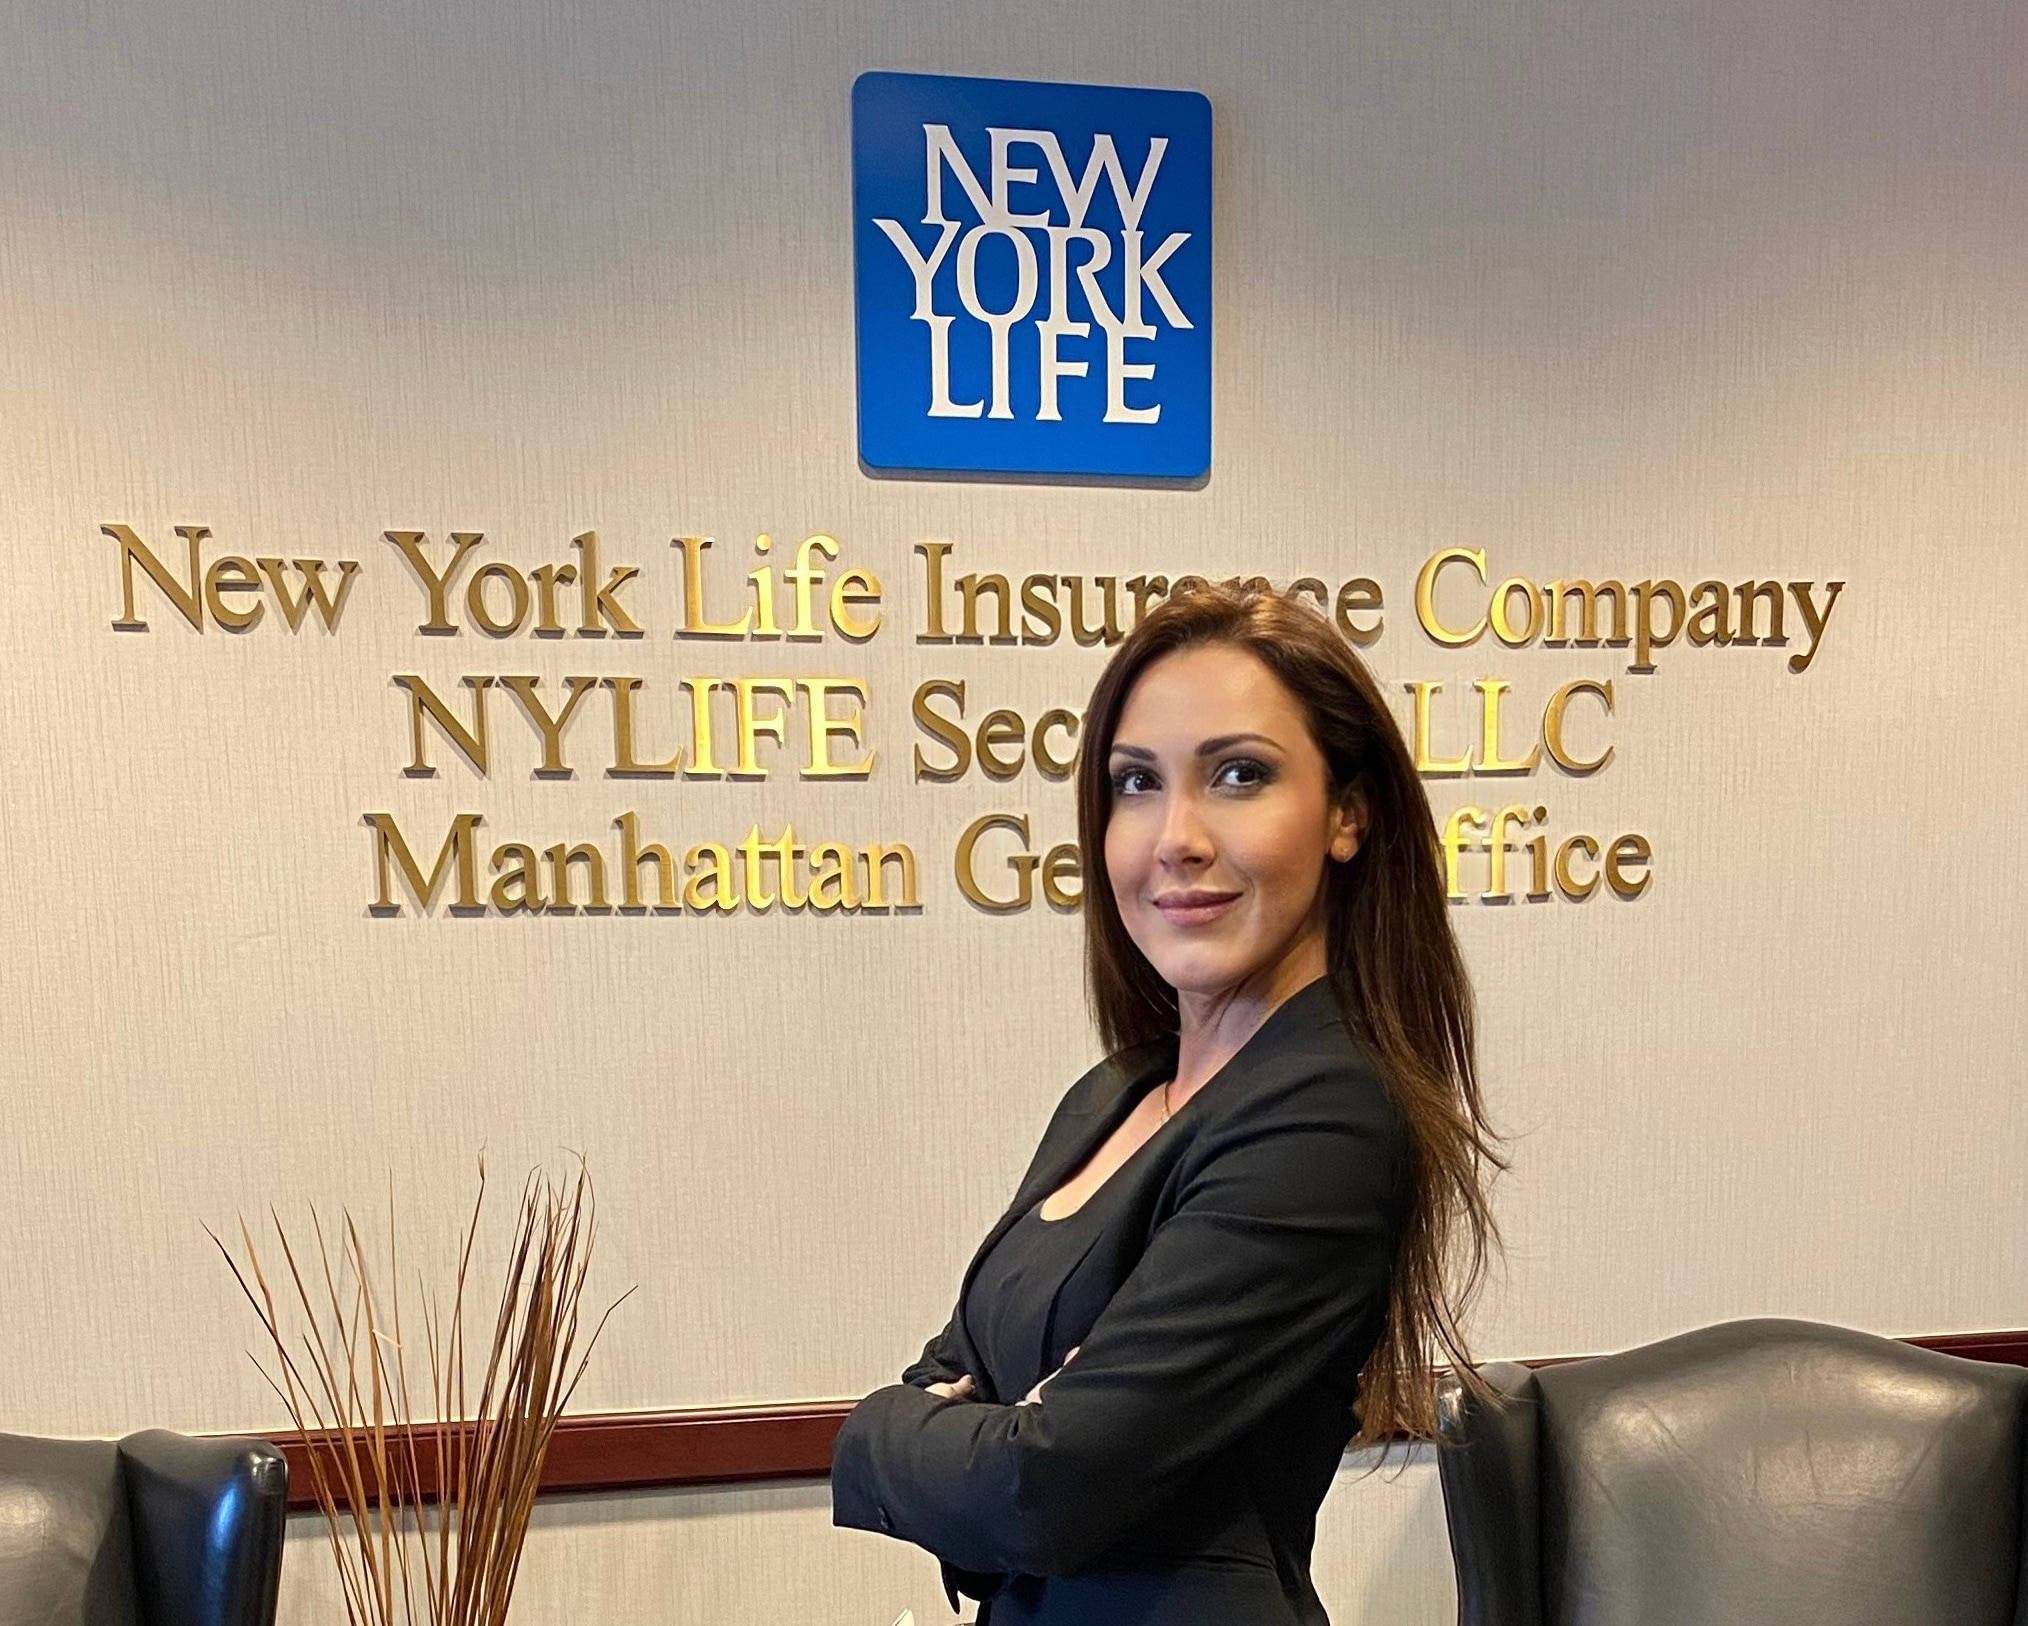 MICHELLE VASCONCELOS SOMERS  Your Financial Professional & Insurance Agent